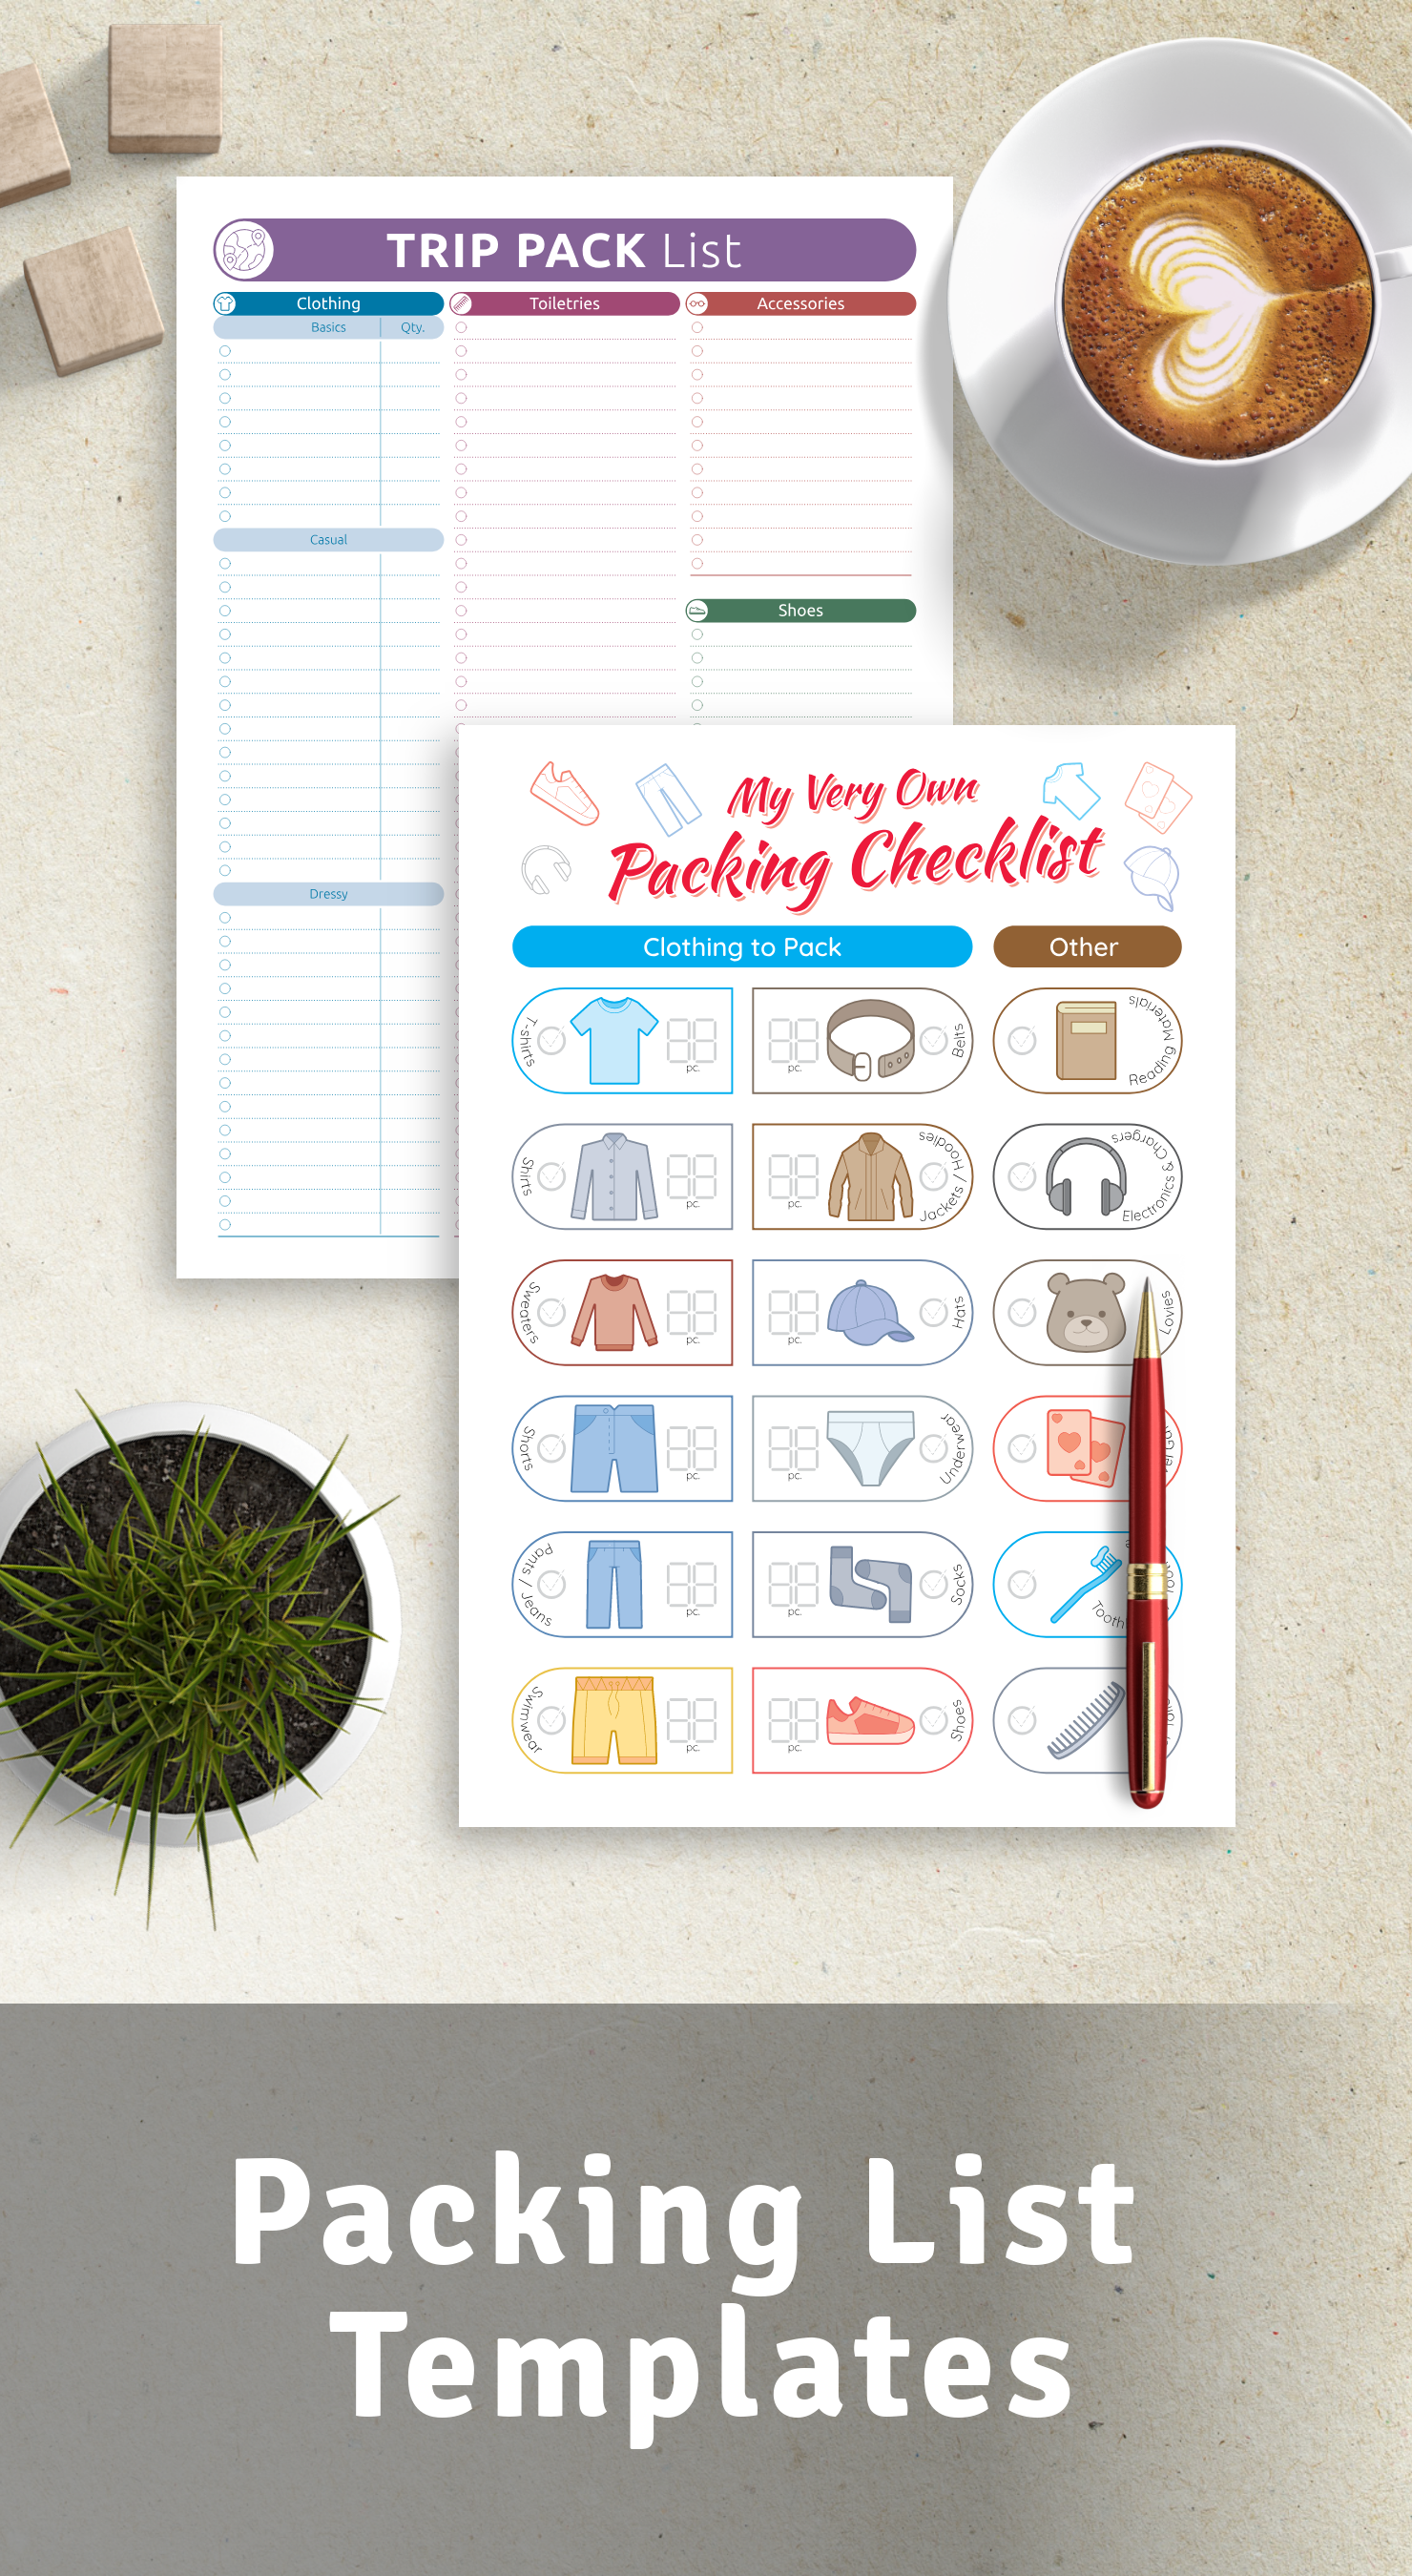 Best Packing List Templates